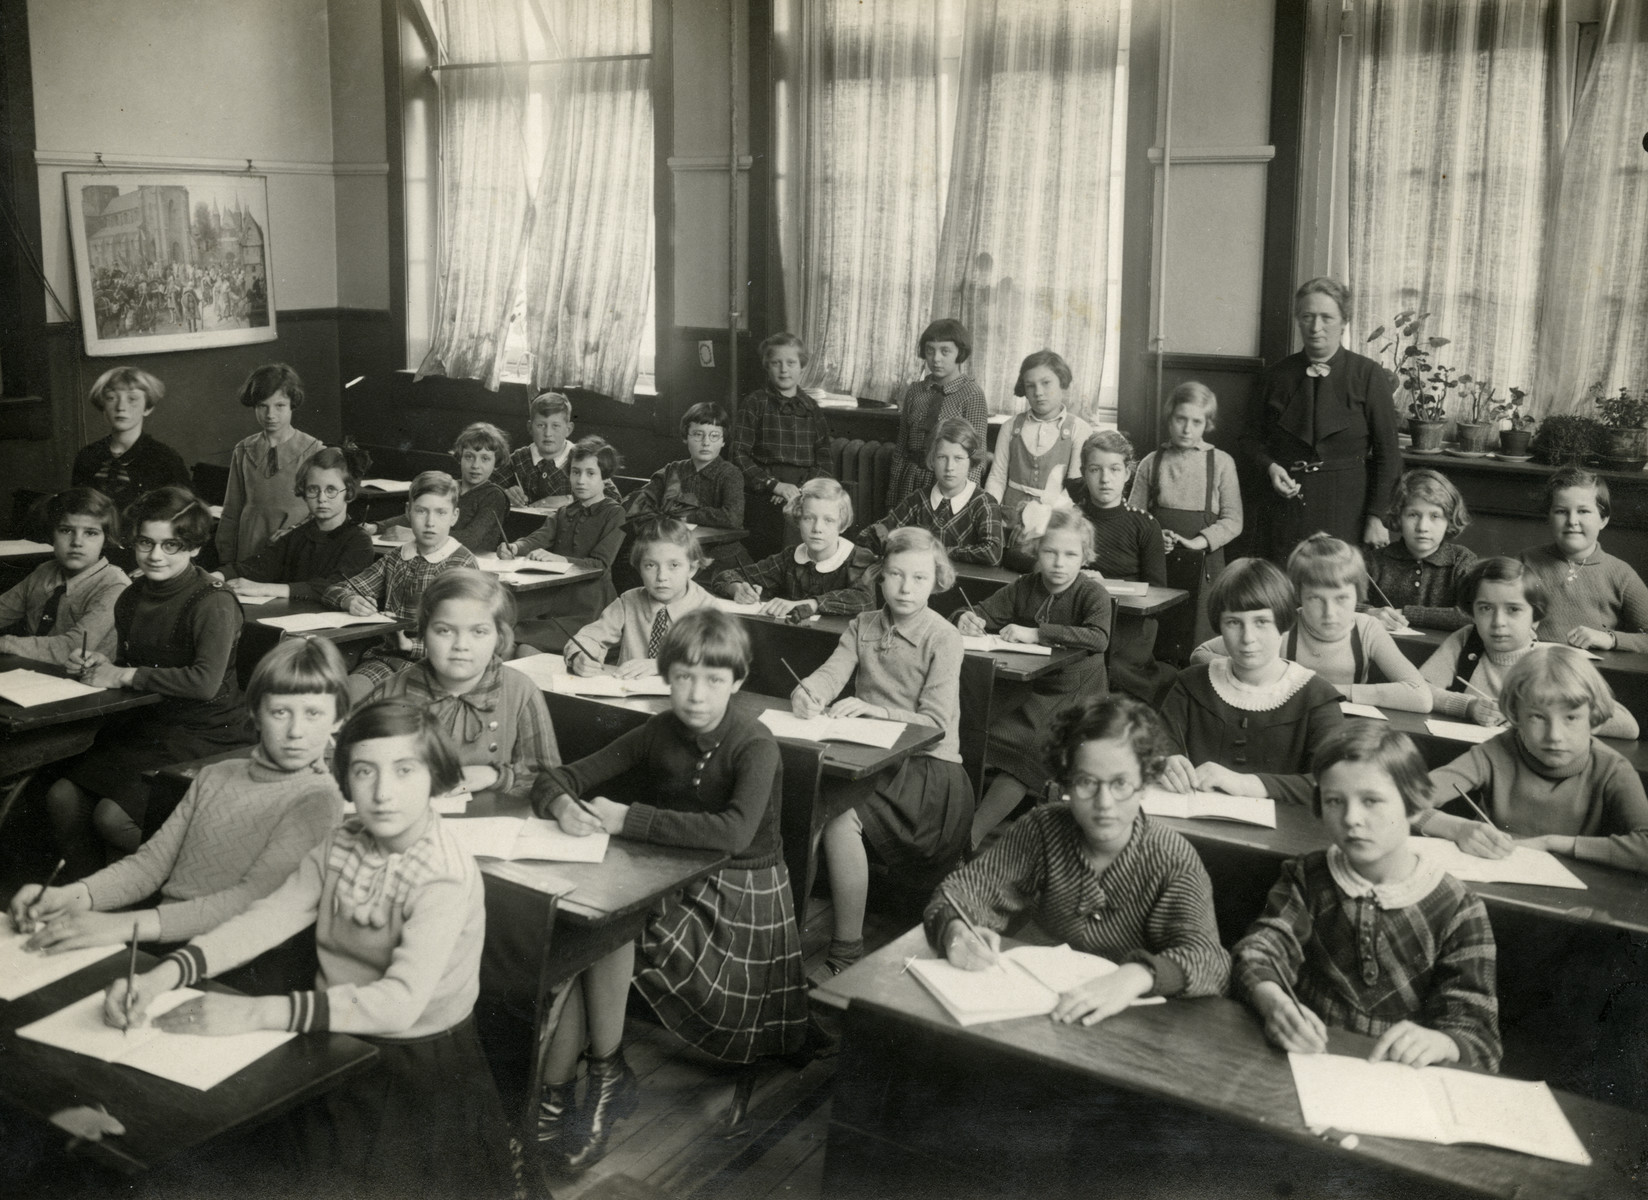 Girls in the fourth grade class in Dordrecht sit at their desks.  Margalit Lujten is sitting in the second row on the far right.  Also pictured is another Jewish girl, Mia Achteribbe, in the front row, second from the right.